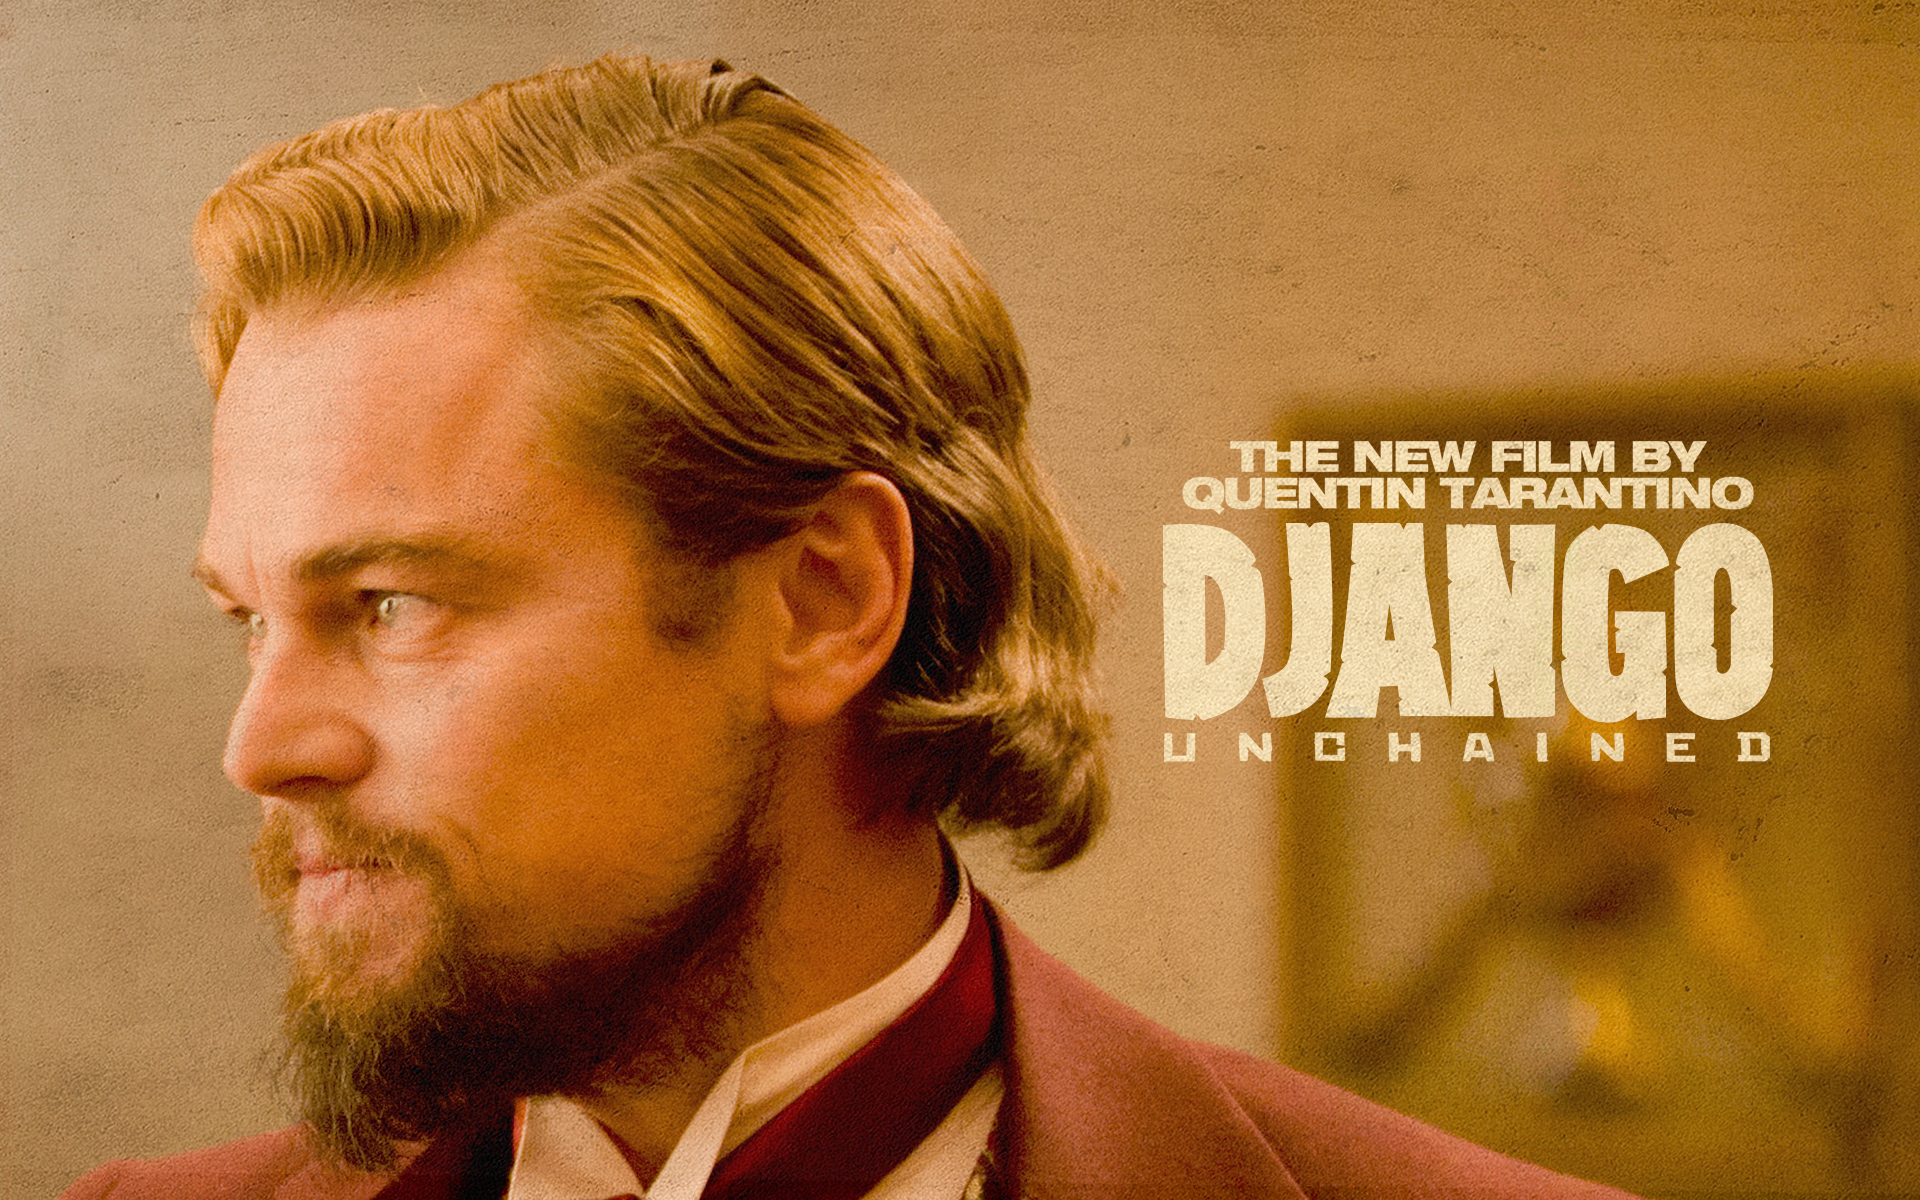 django unchained movie desktop wallpaper 57176